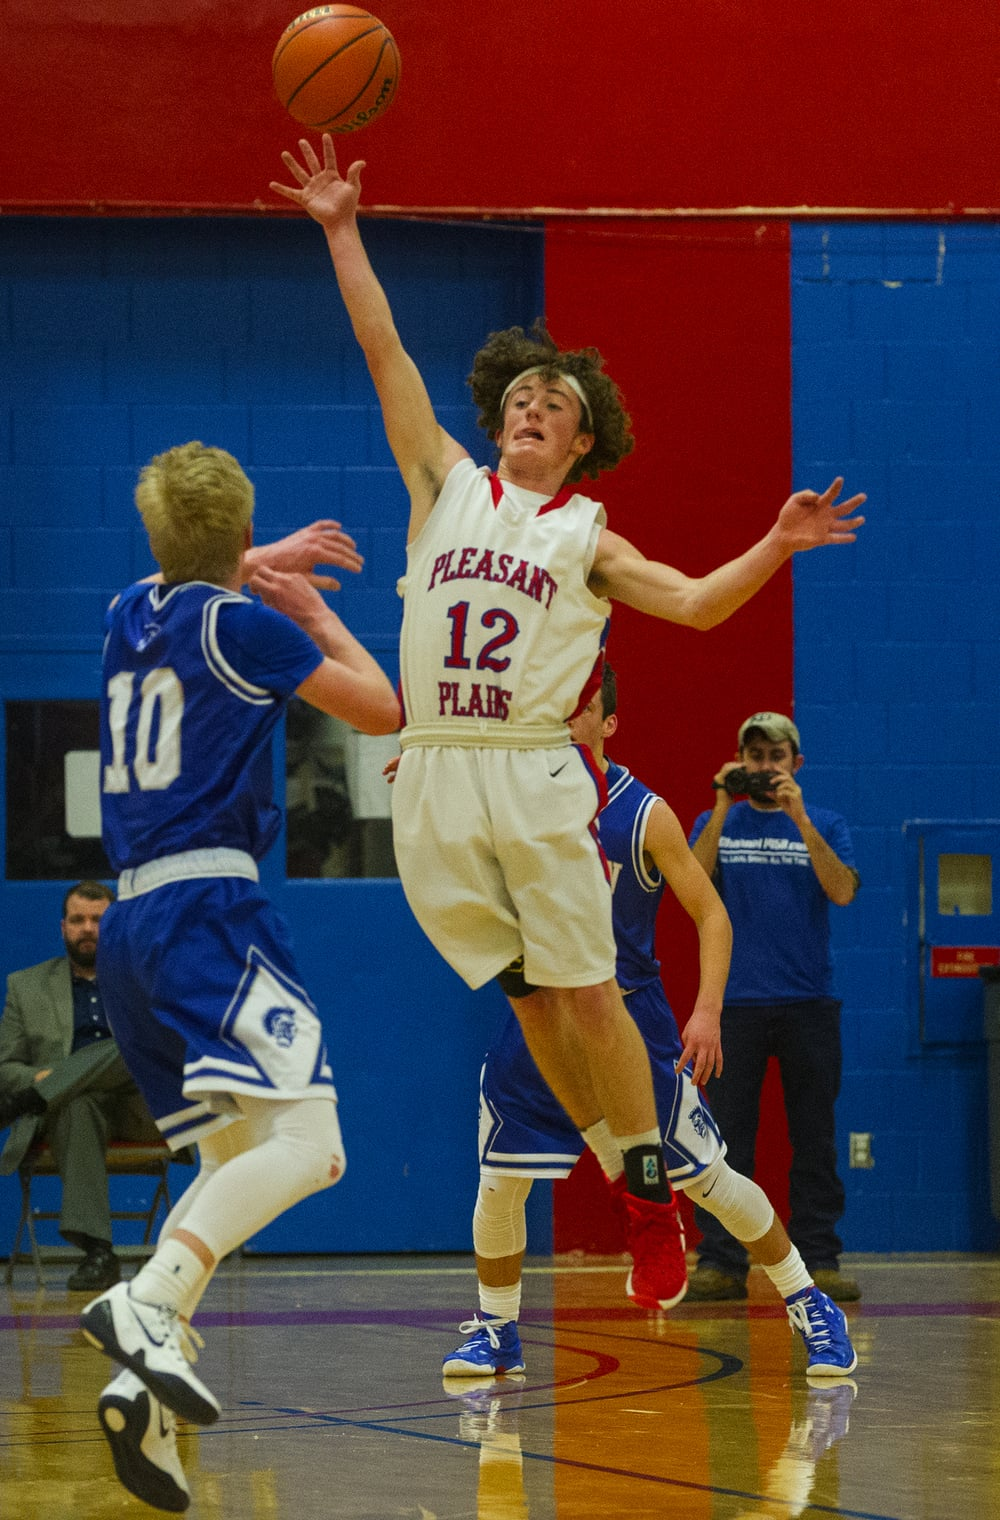 Pleasant Plains' Daulton Nibbe leaps to reach an Auburn pass from Tristan Waver during the semifinals of the Sangamon County Boys Basketball Tournament Wednesday, Jan. 13, 2016. Ted Schurter/The State Journal-Register